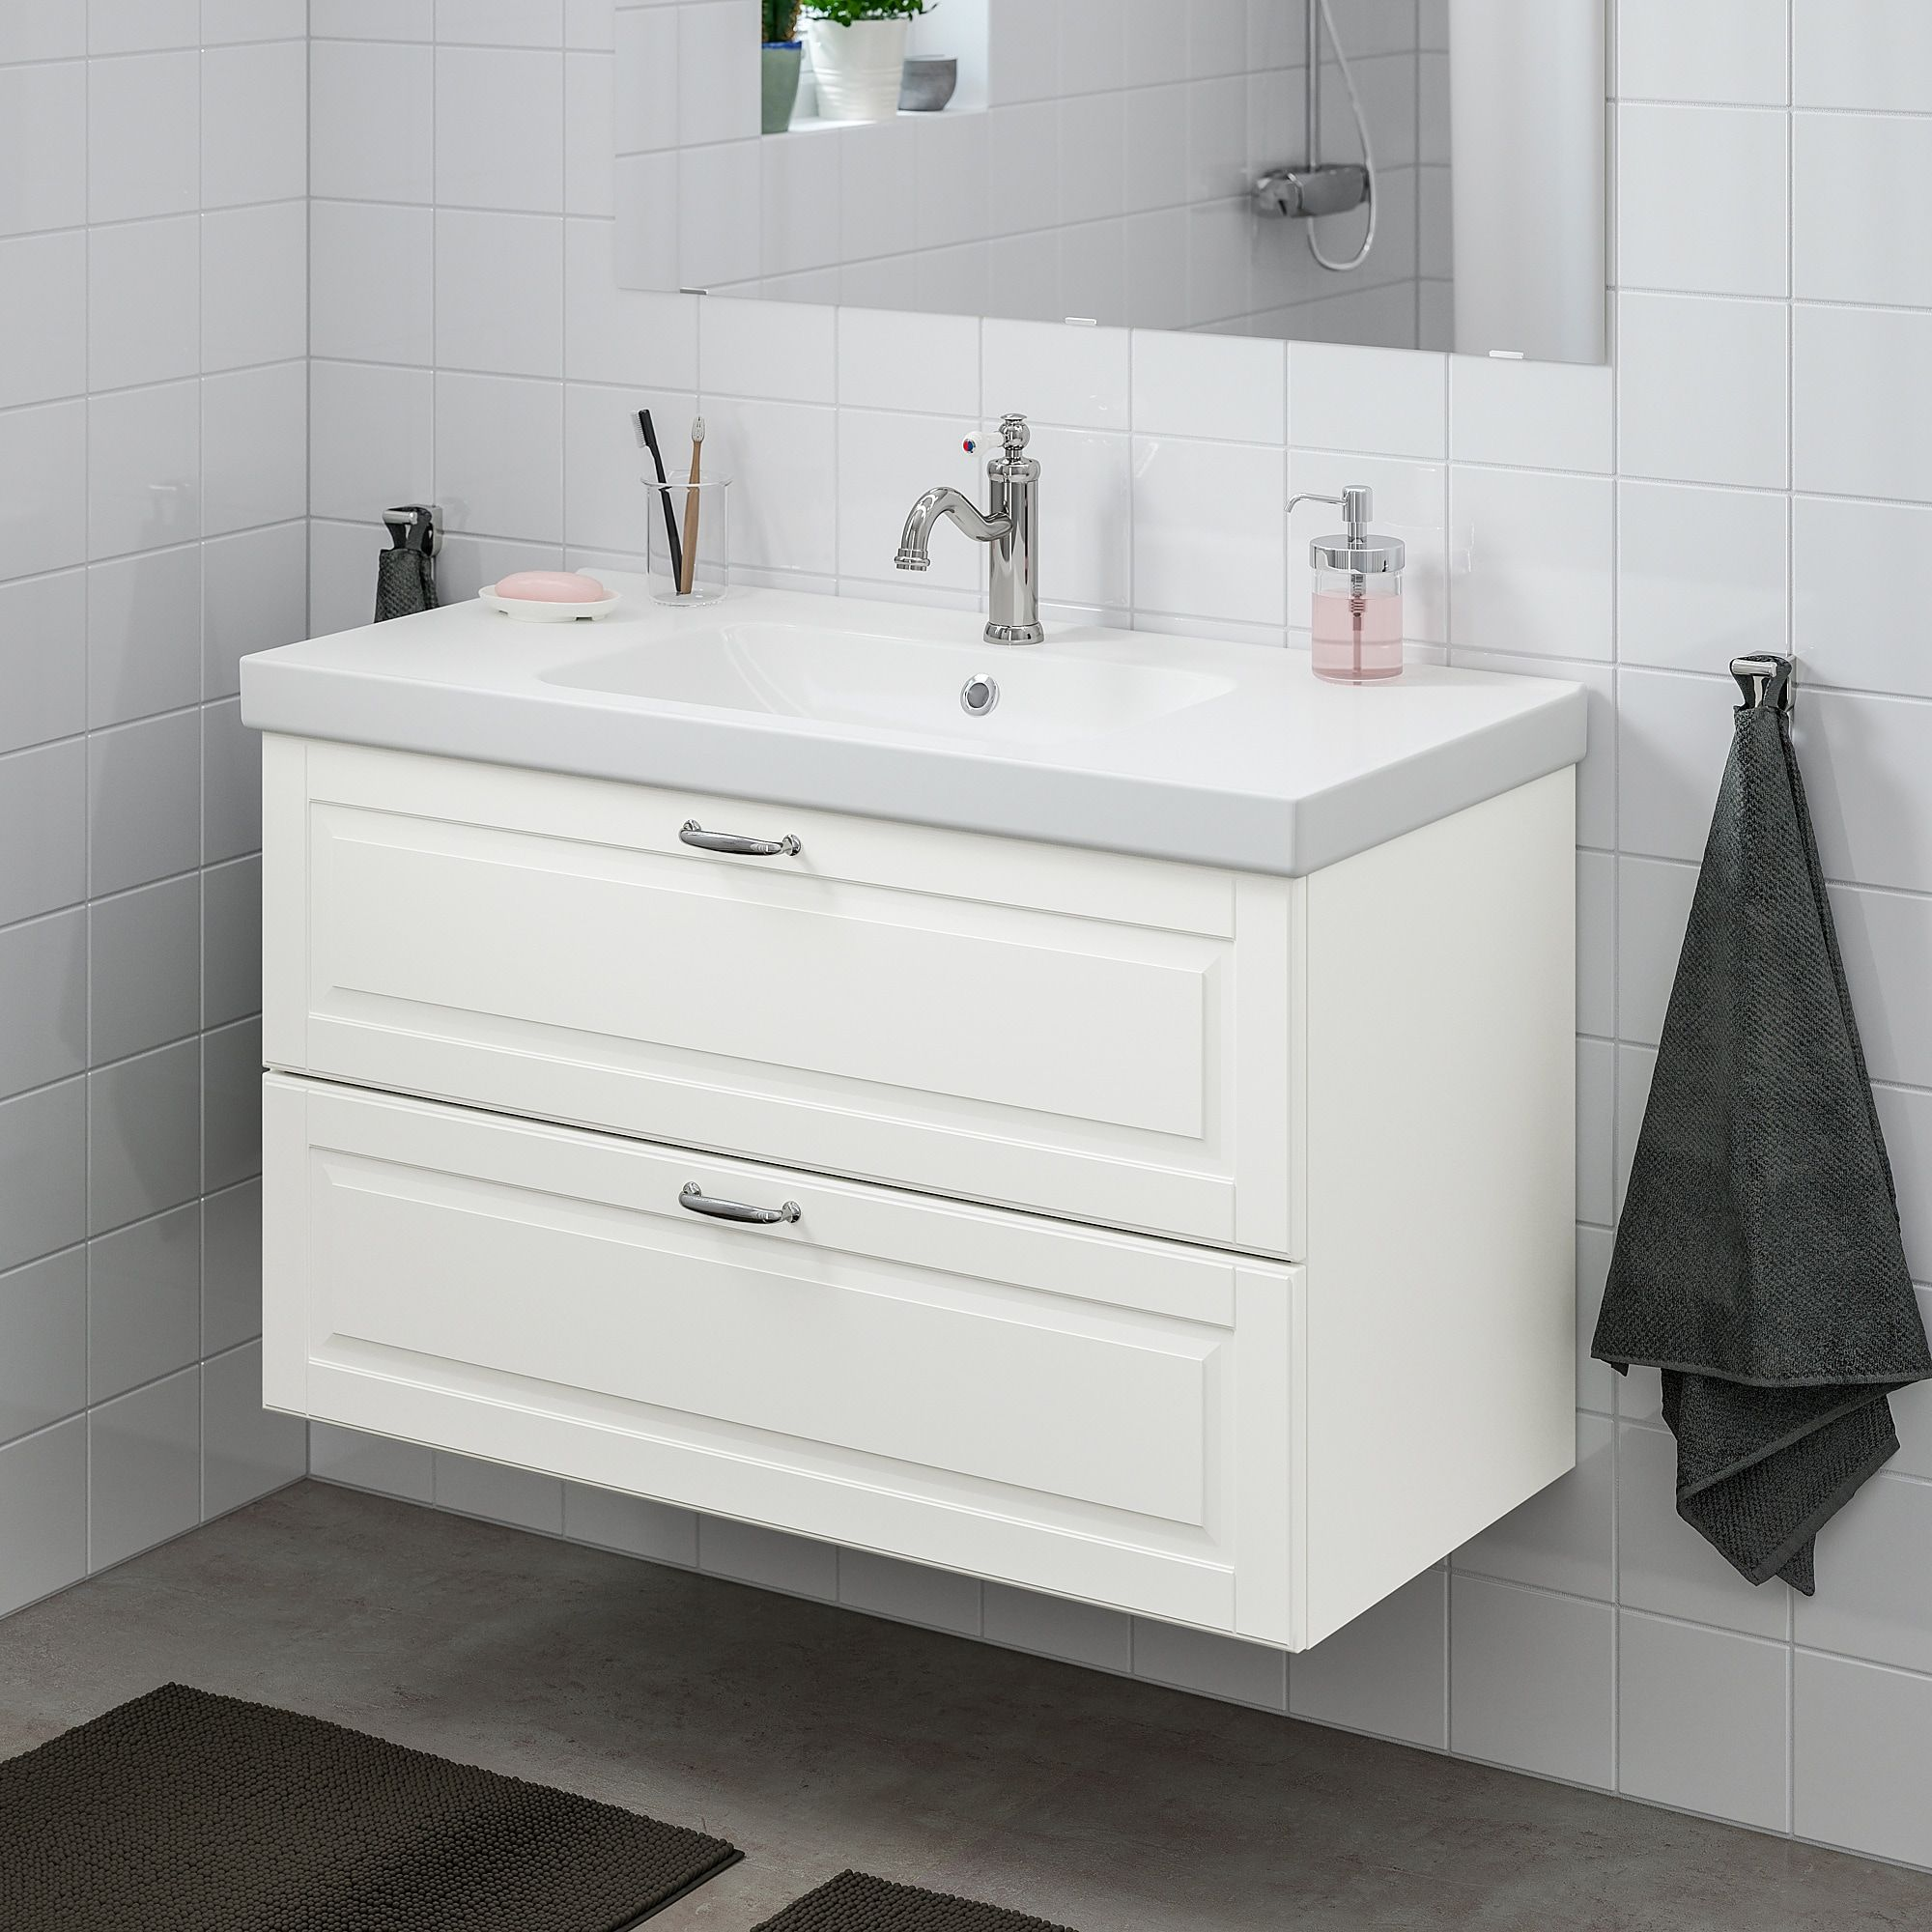 Home Furniture Décor Outdoors Shop Online In 2021 Ikea Godmorgon Sink Cabinet Bathroom Vanity